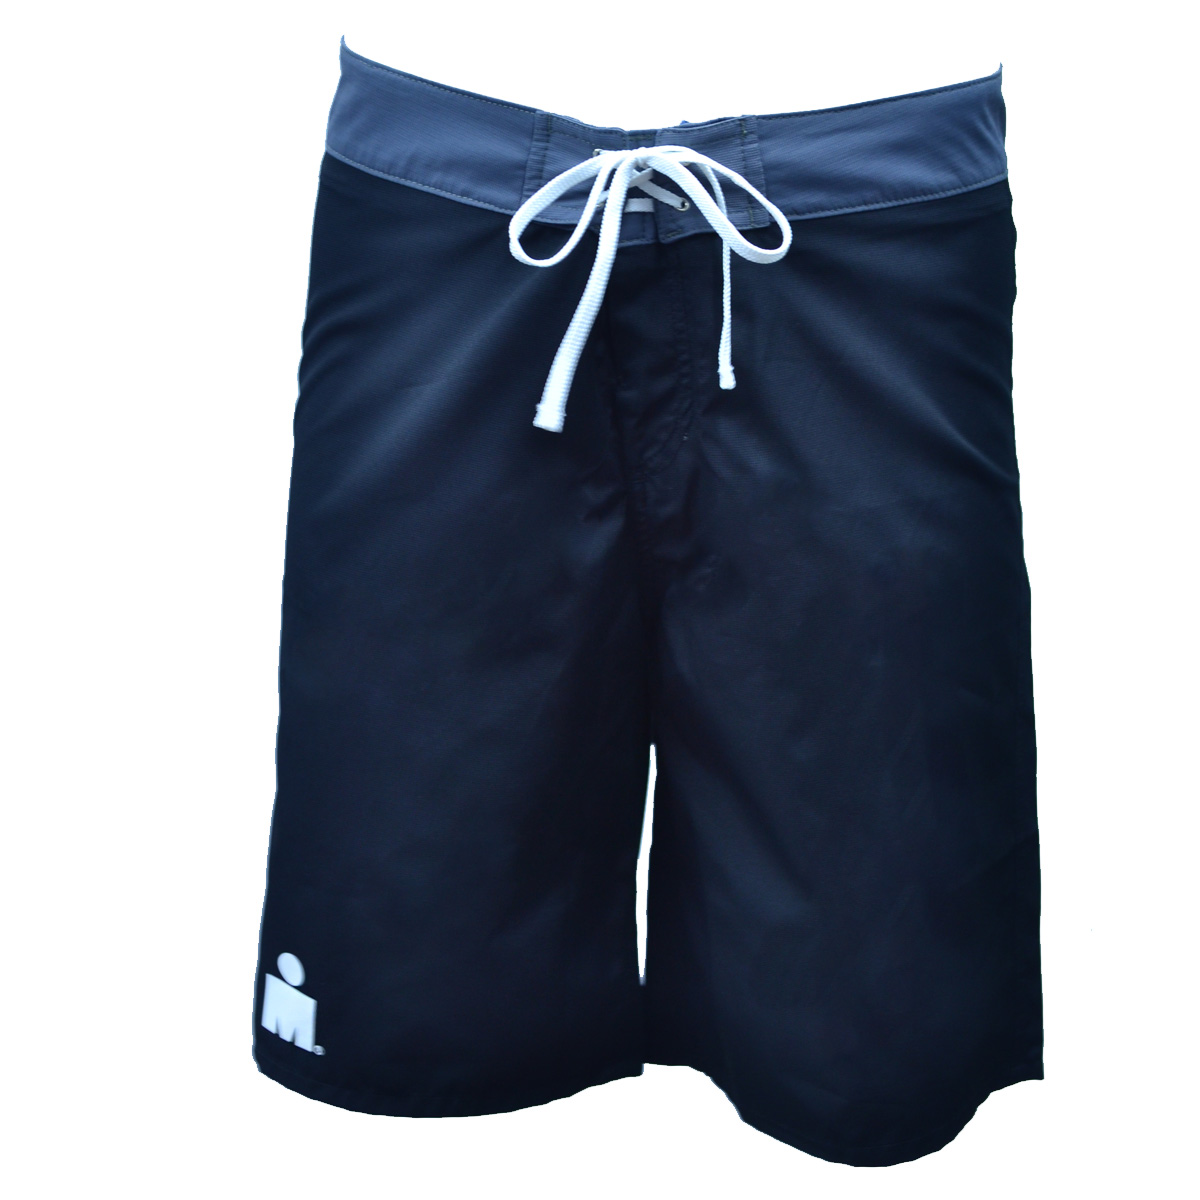 IRONMAN ROKA Men's Kona Boardshorts-Black/Grey